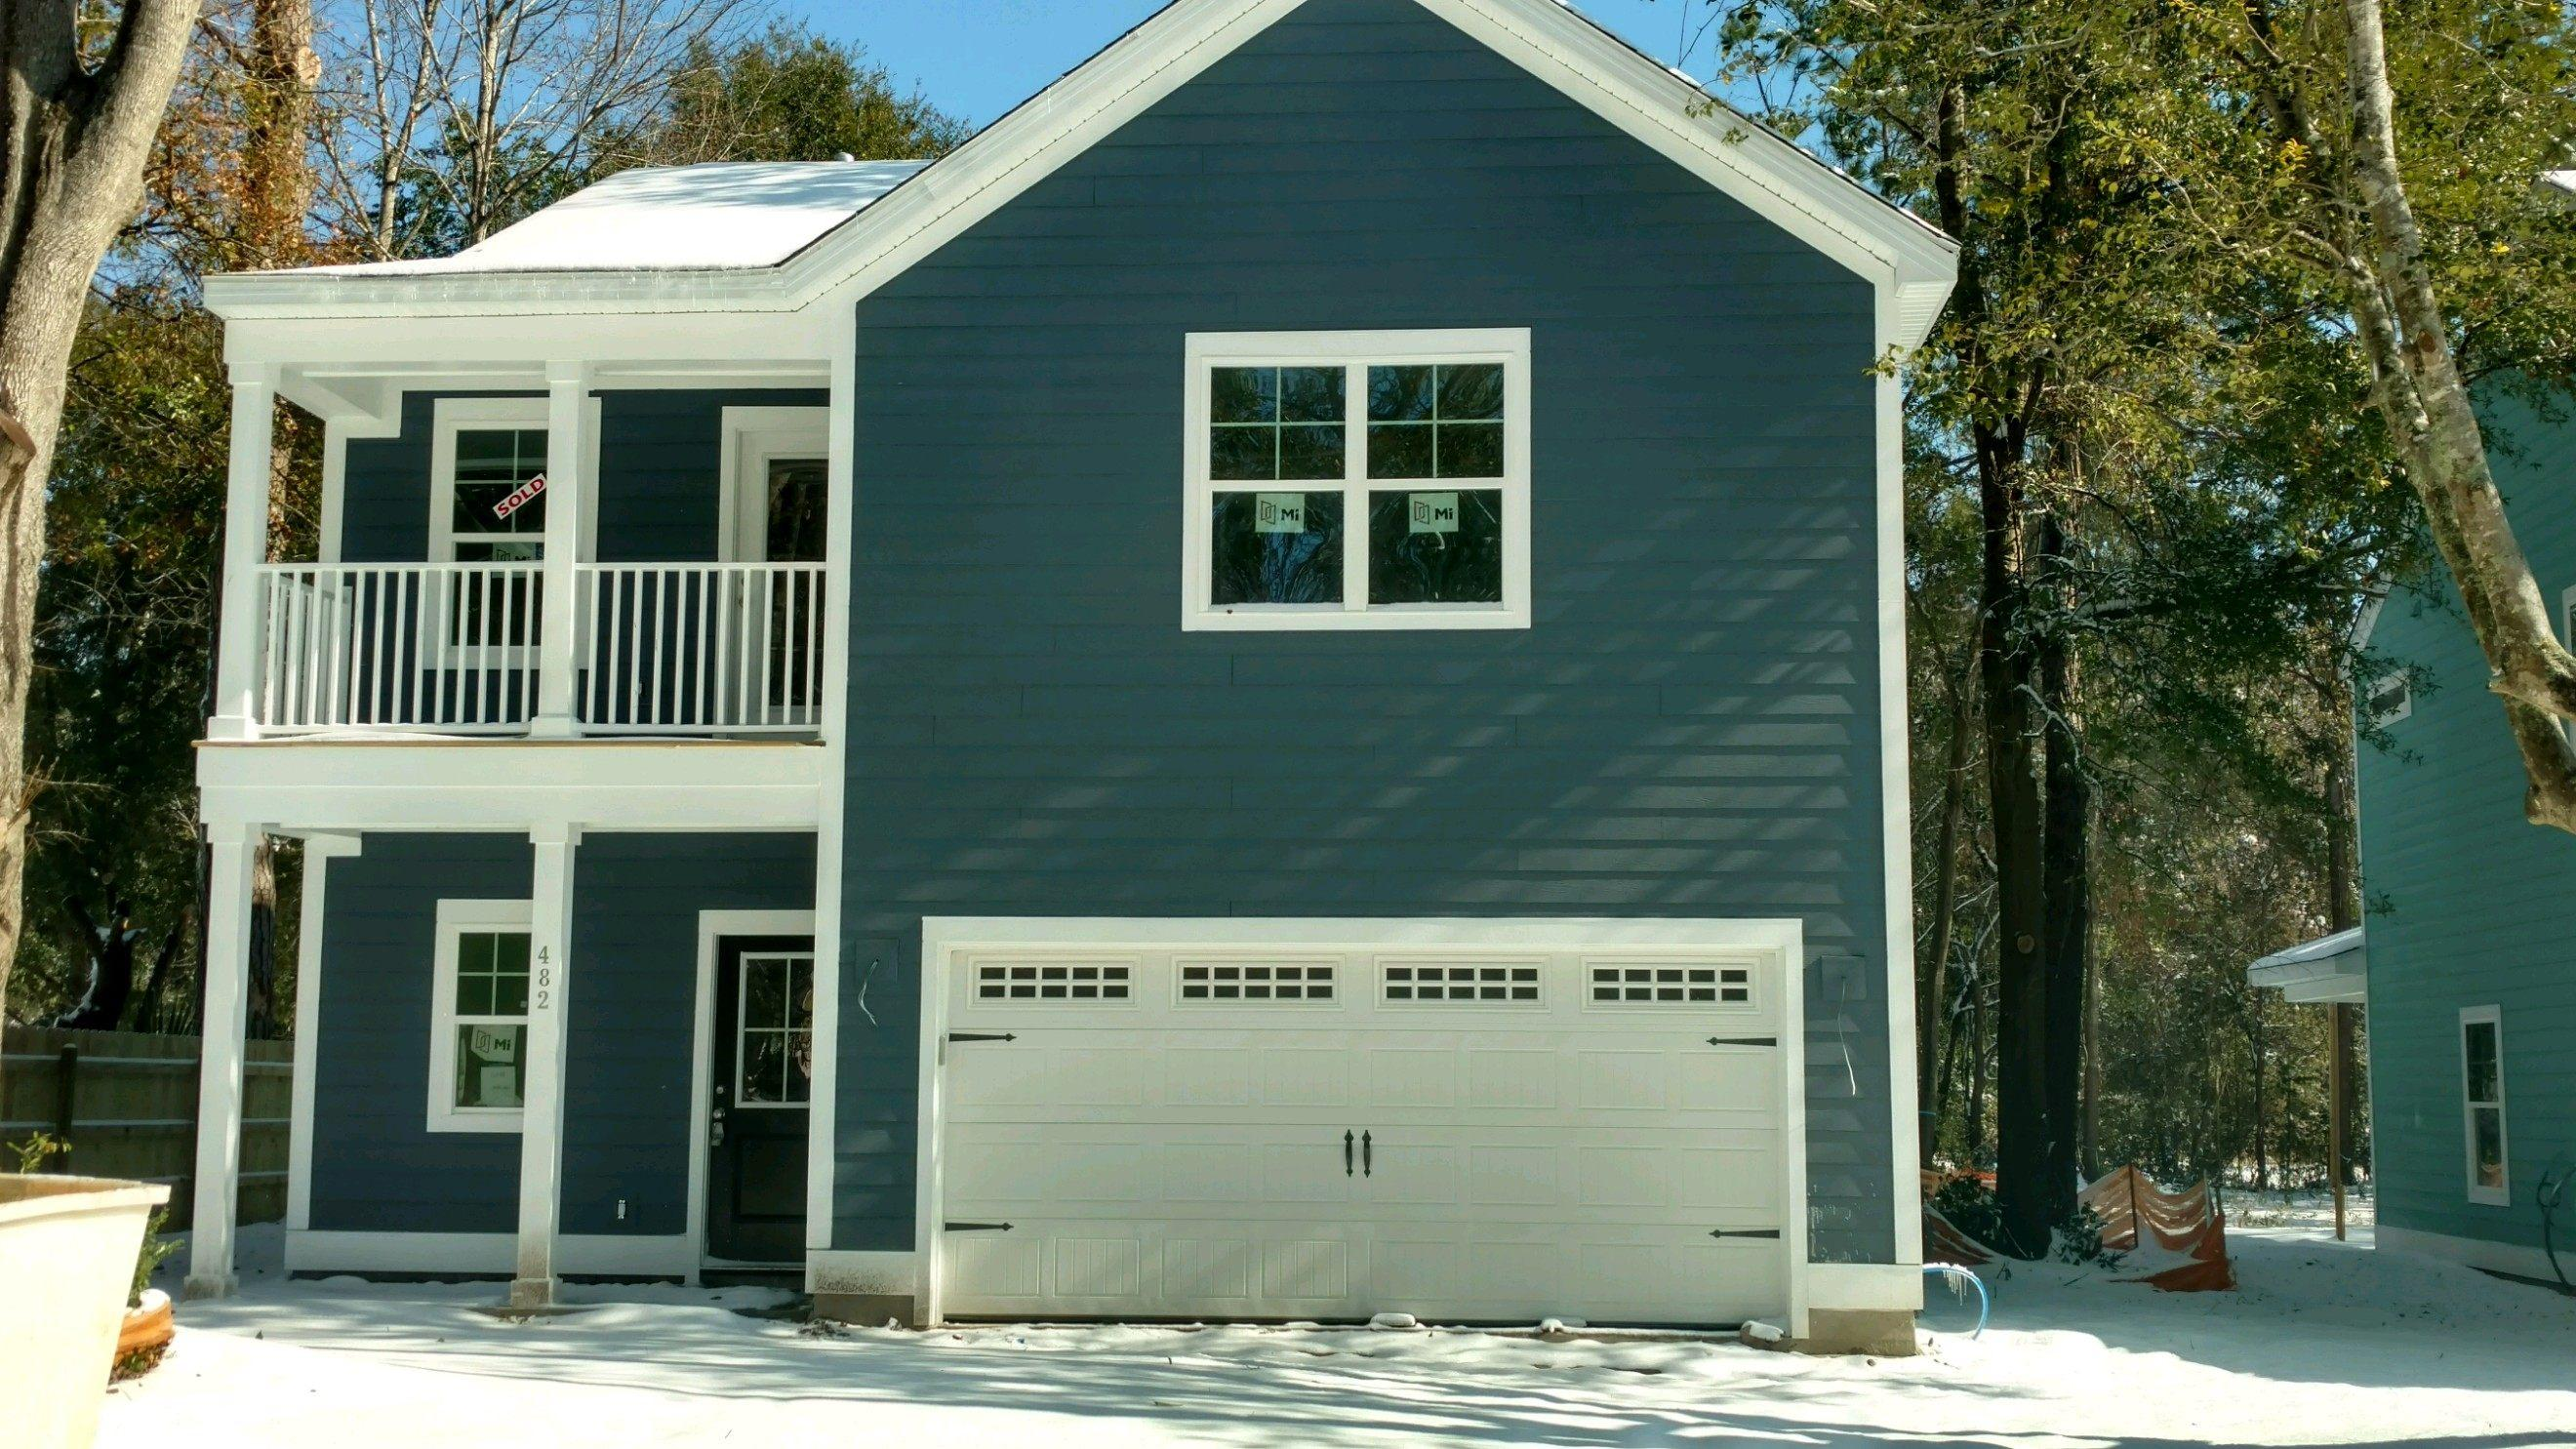 Photo of 1151 Leary St, North Charleston, SC 29406